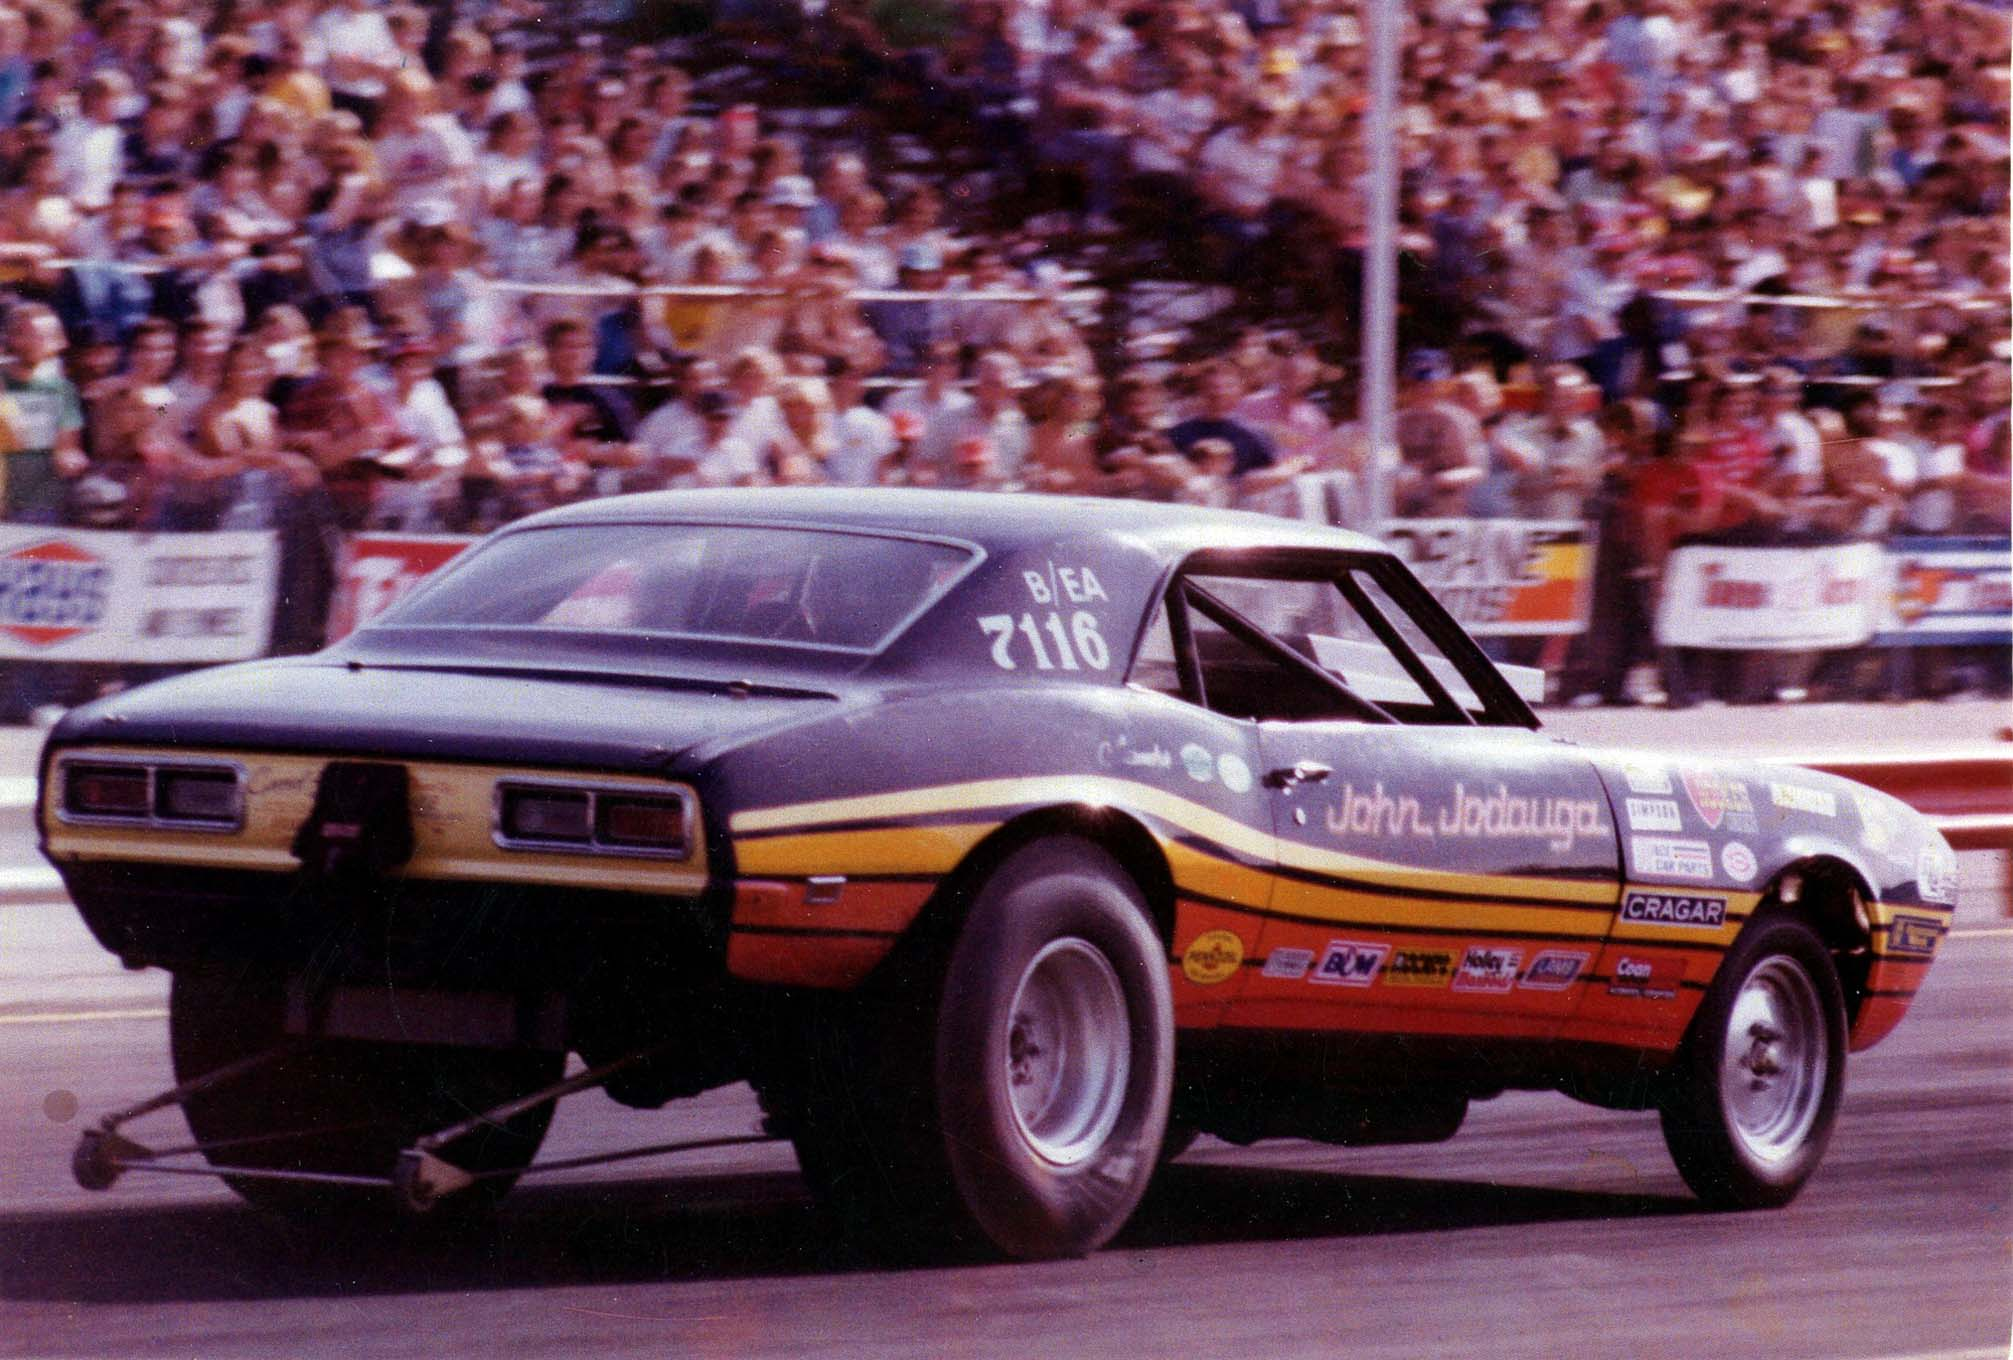 The Camaro ran in B/Econo Altered from 1977–1979 and then in Super Gas in 1980. It is shown here at the first national event that hosted Super Gas, the 1980 Winternationals, where it ran a 9.809 on the then-9.80 index—before the advent of the throttle stop.